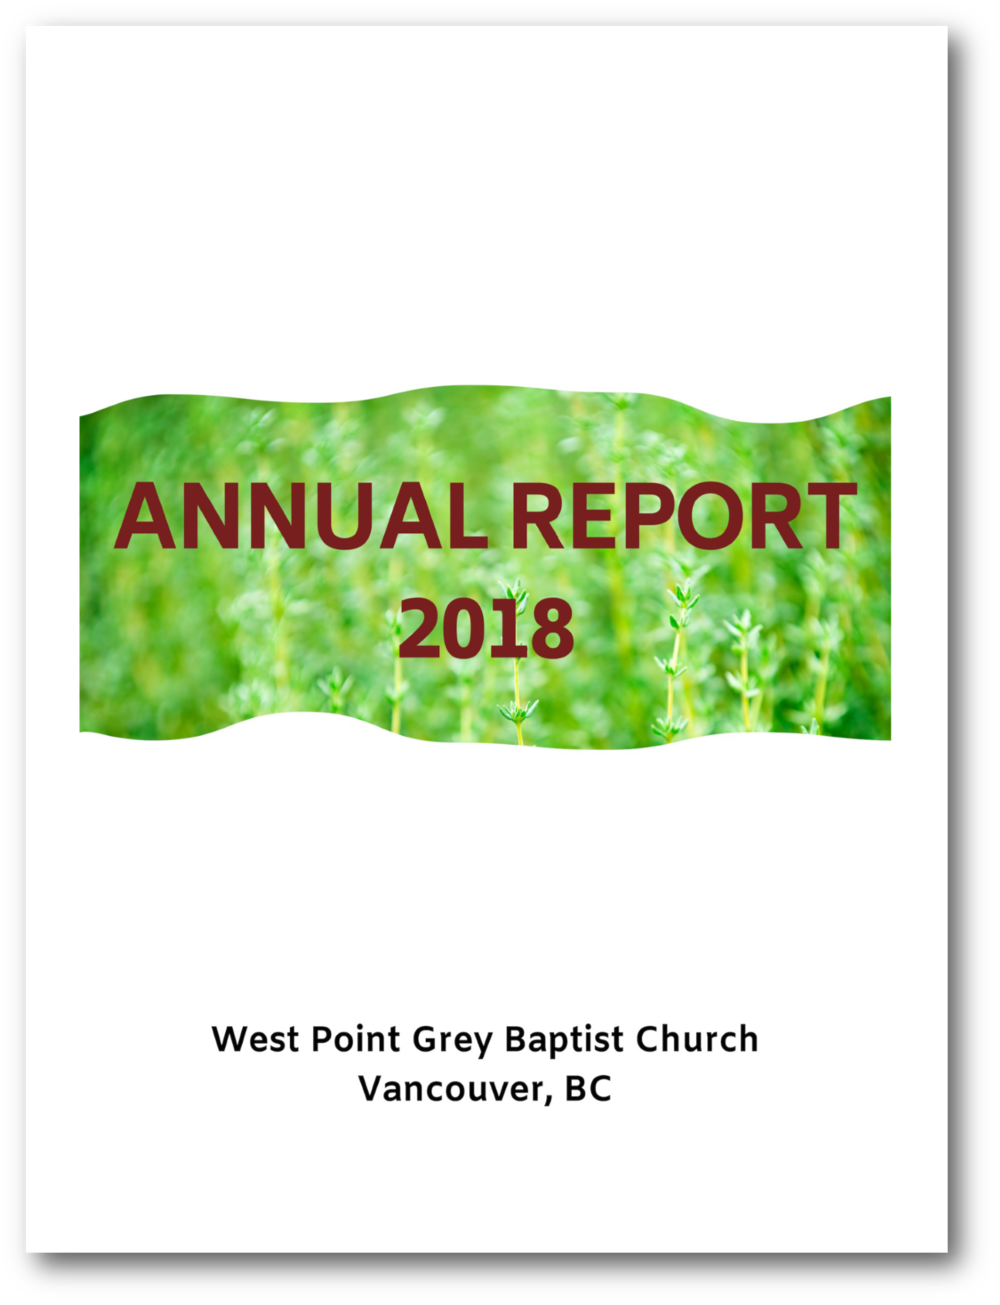 West Point Grey Baptist Church Annual Report 2018